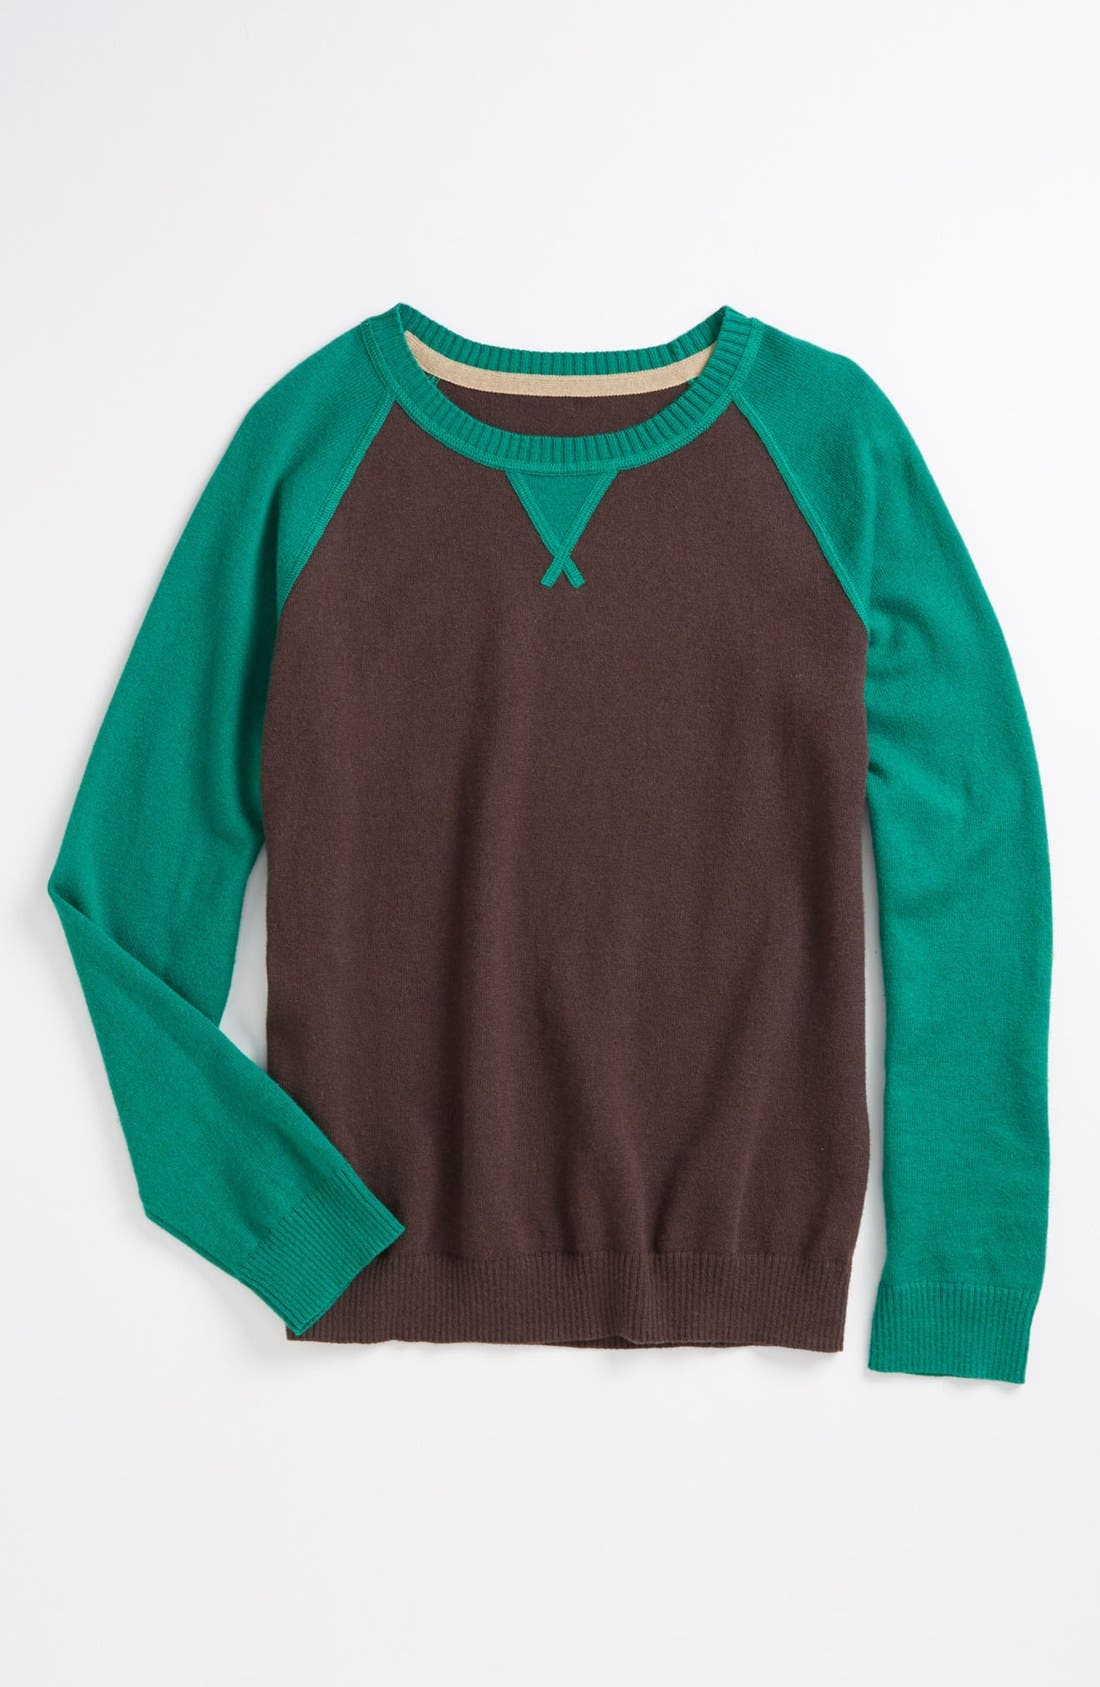 Alternate Image 1 Selected - Tucker + Tate 'Kennedy' Sweater (Little Boys)